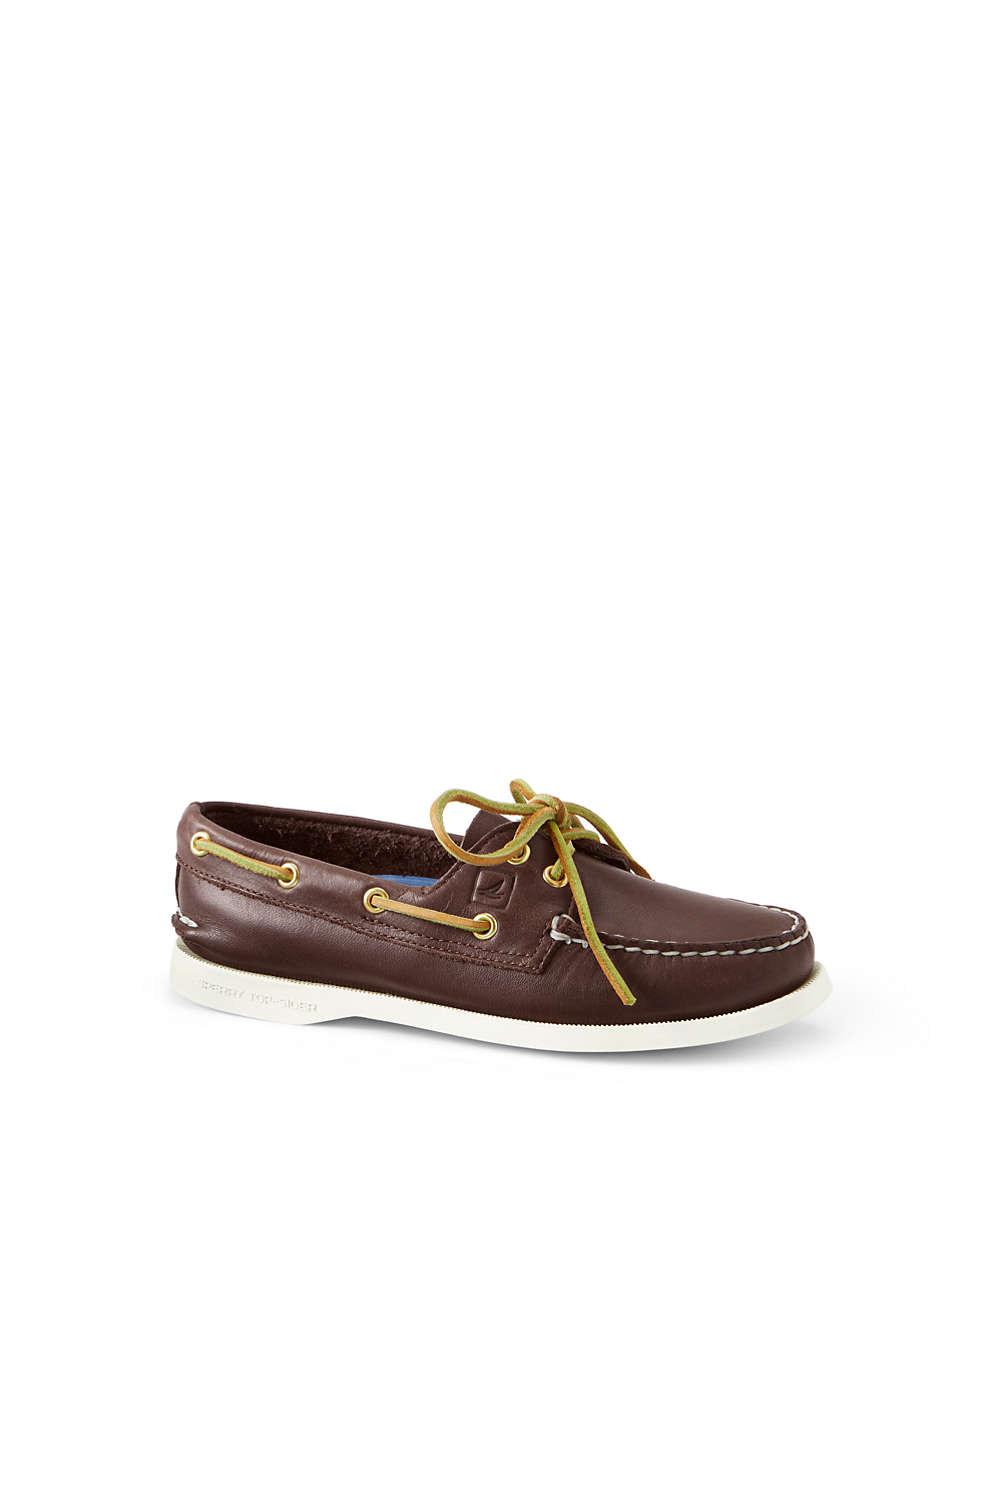 Women S Sperry Authentic Original 2 Eye Boat Shoes